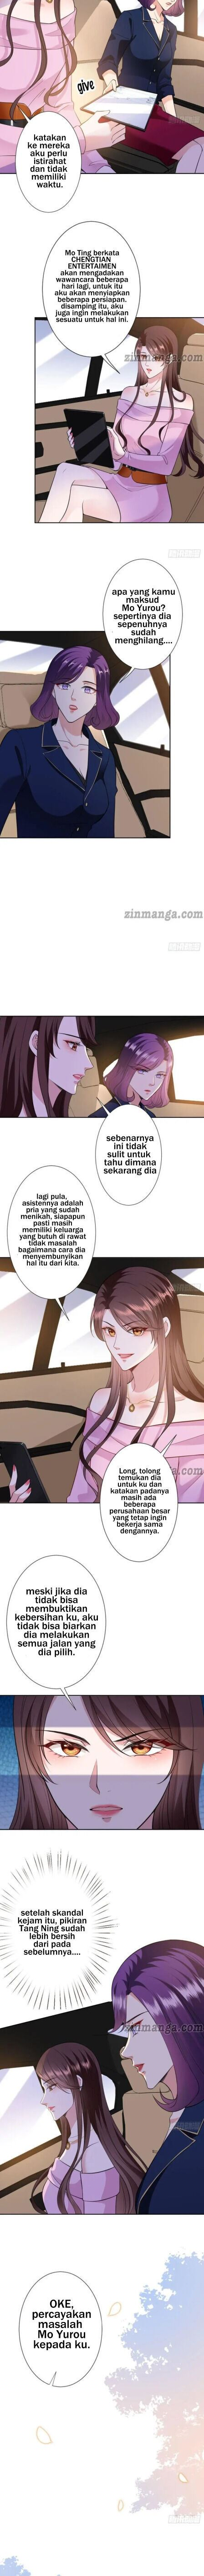 Trial Marriage Husband: Need to Work Hard Chapter 64